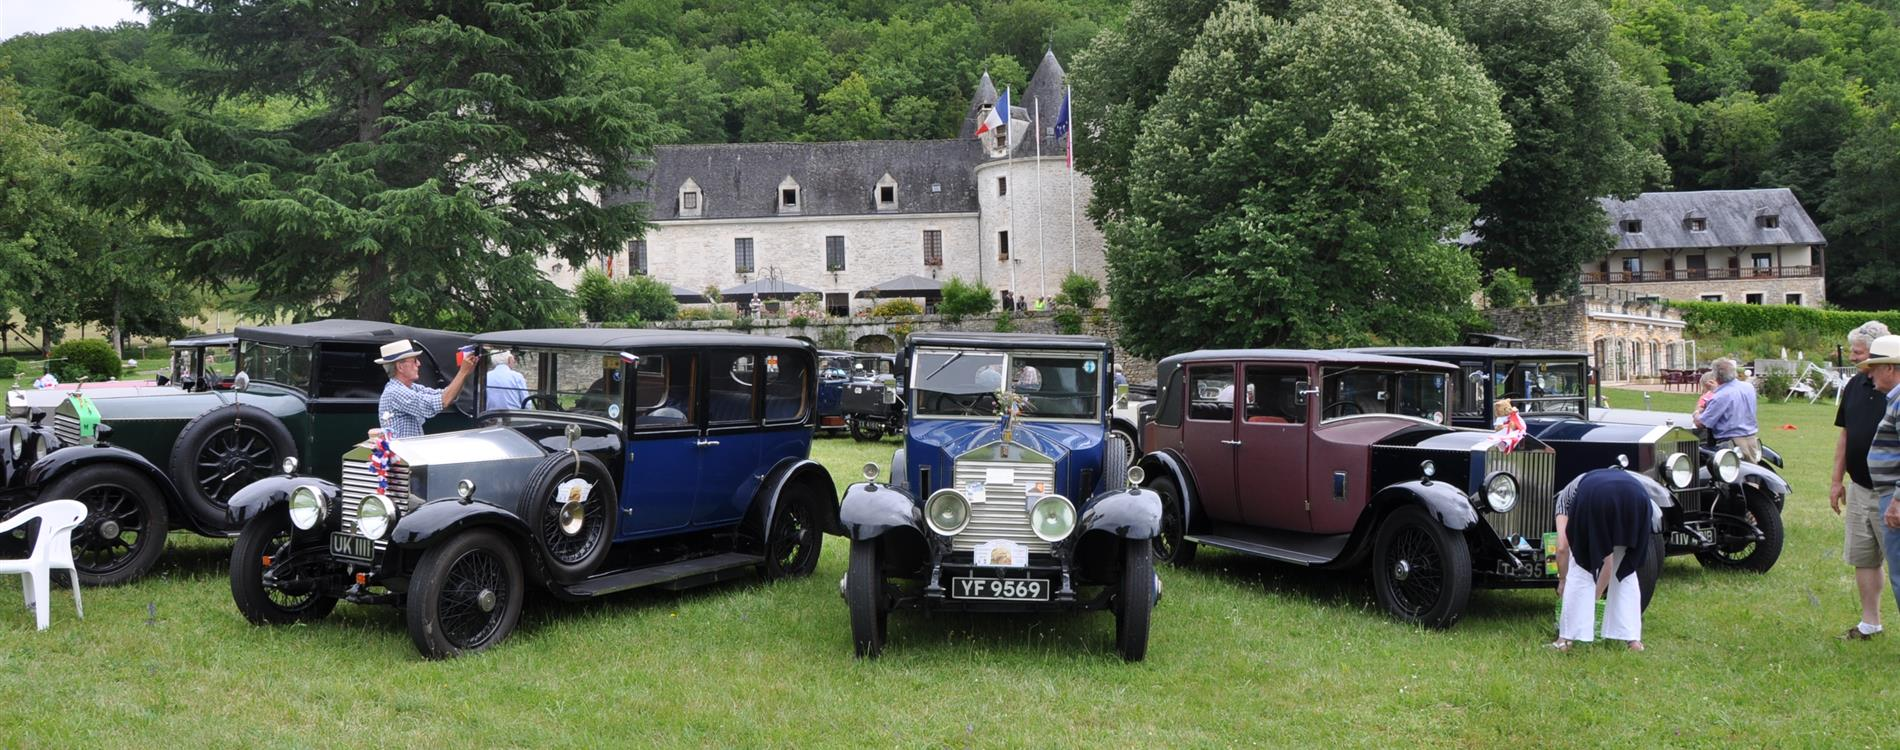 Rolls-Royce Enthusiast's club in La Fleunie